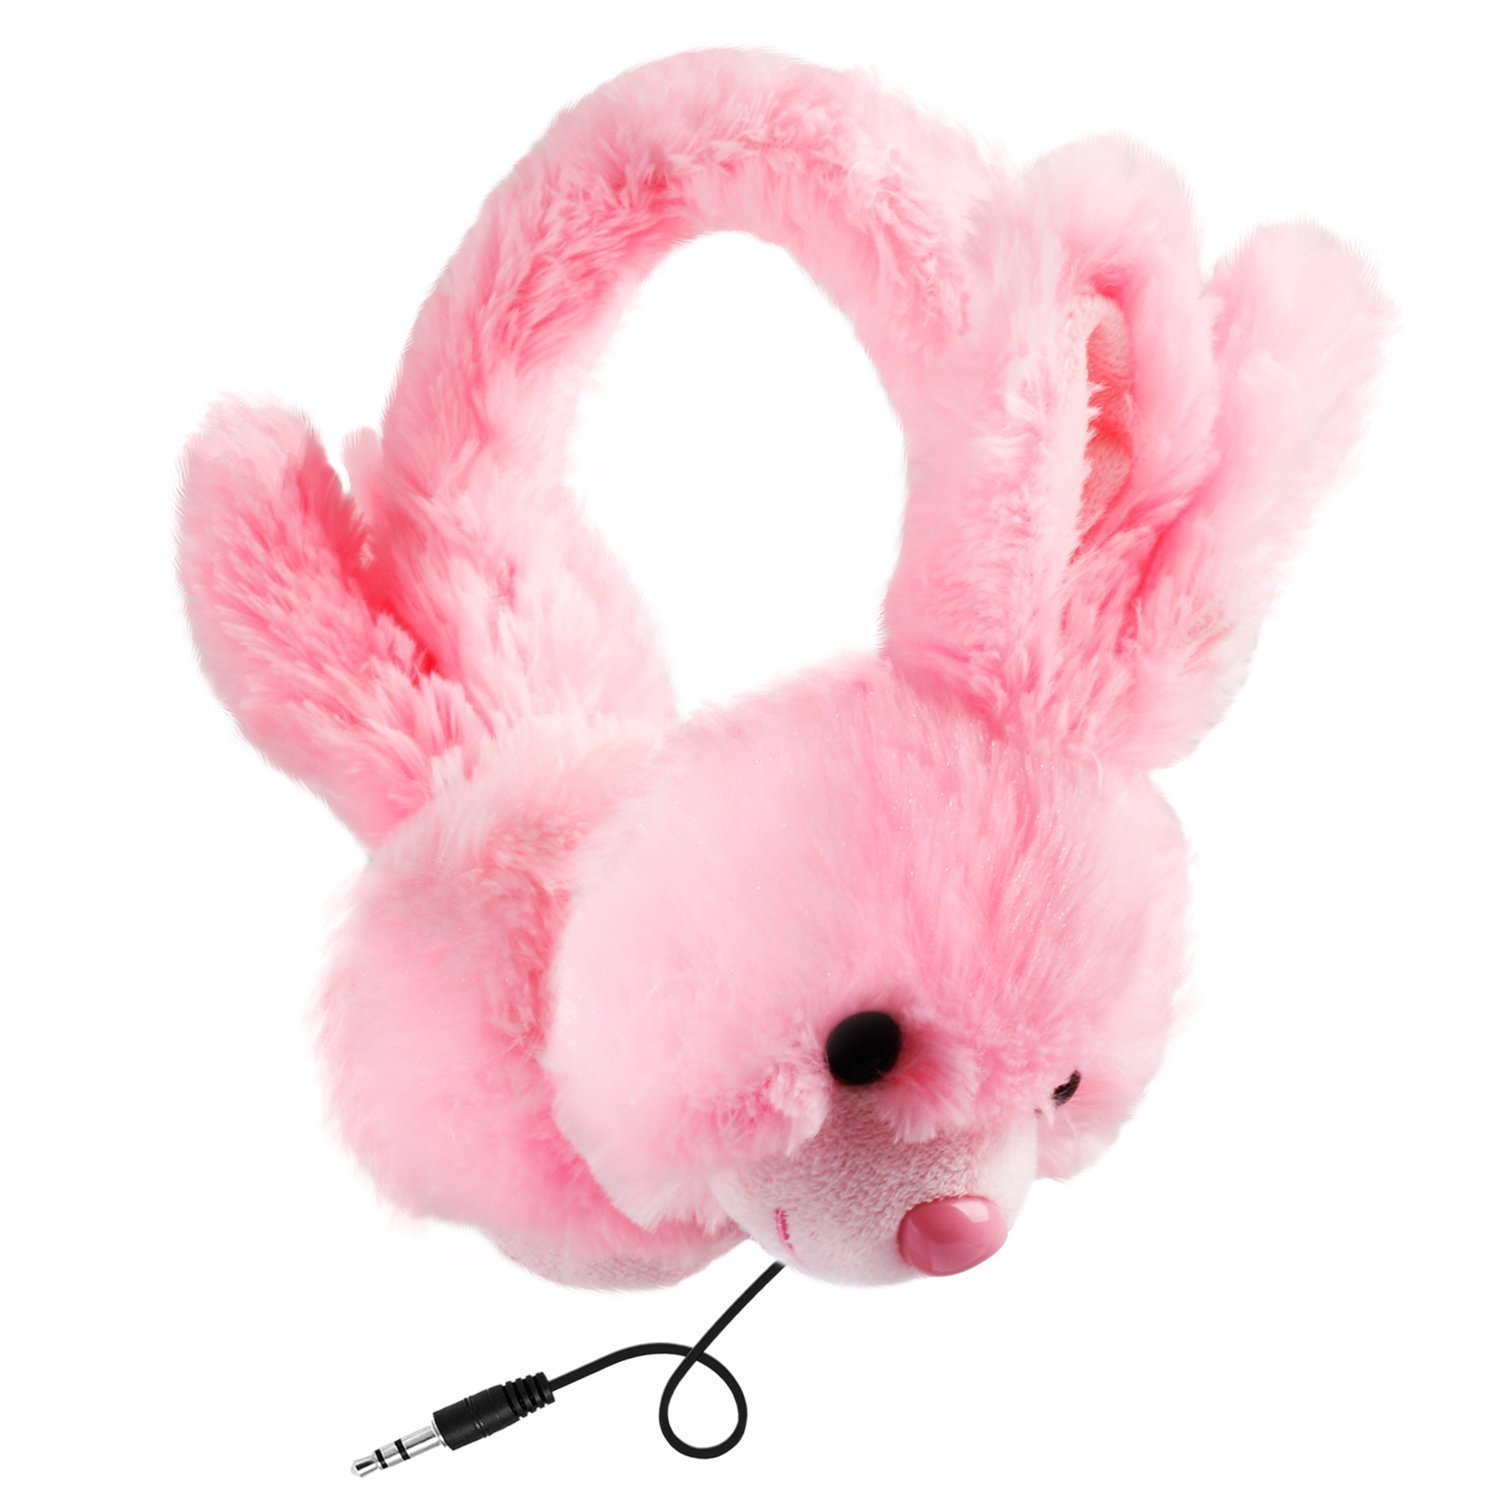 Jamsonic Stuffed Animal Plush On Ear Headphone, Kids, Children, use for Phones, PC, MP3, MP4, Earmuffs